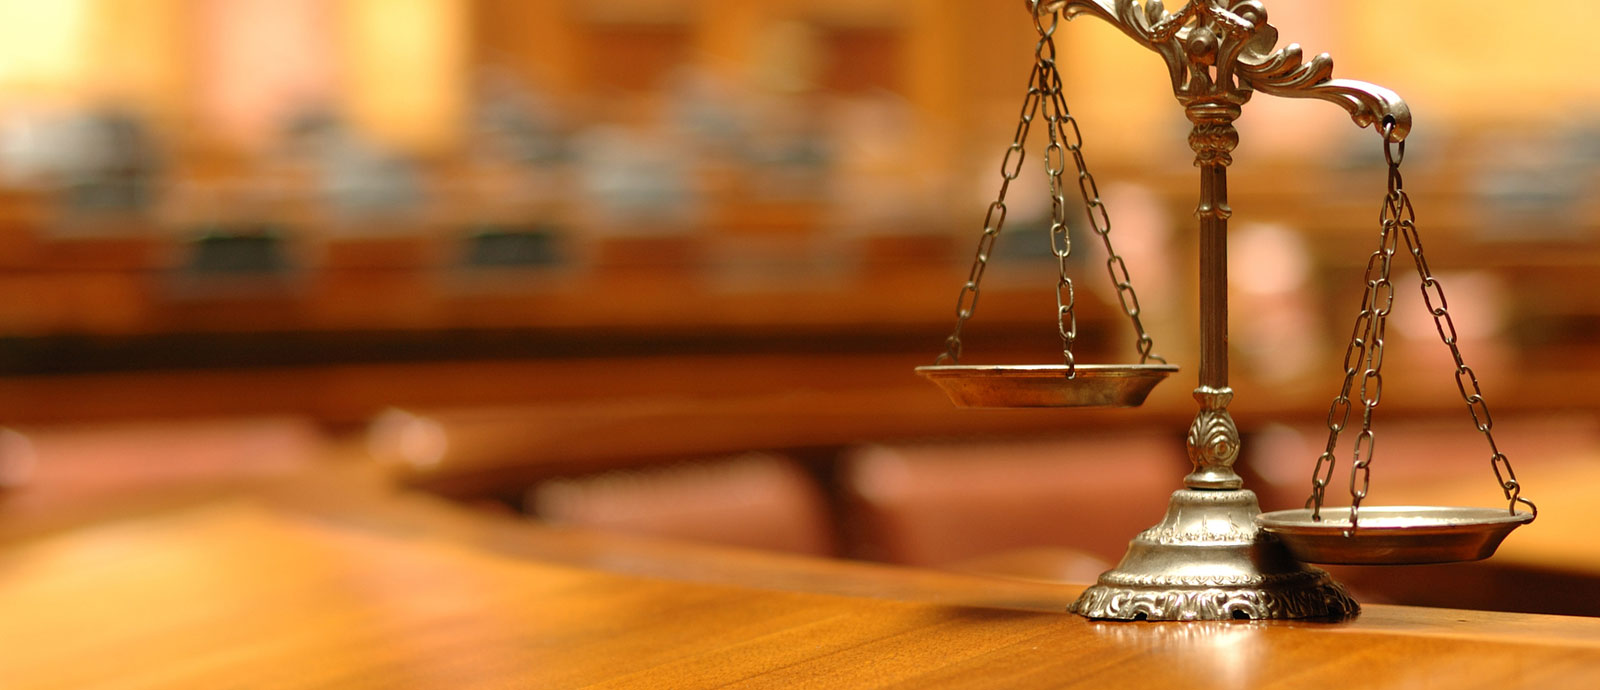 Hire an Expert Lawyer And Resolve Your Problems